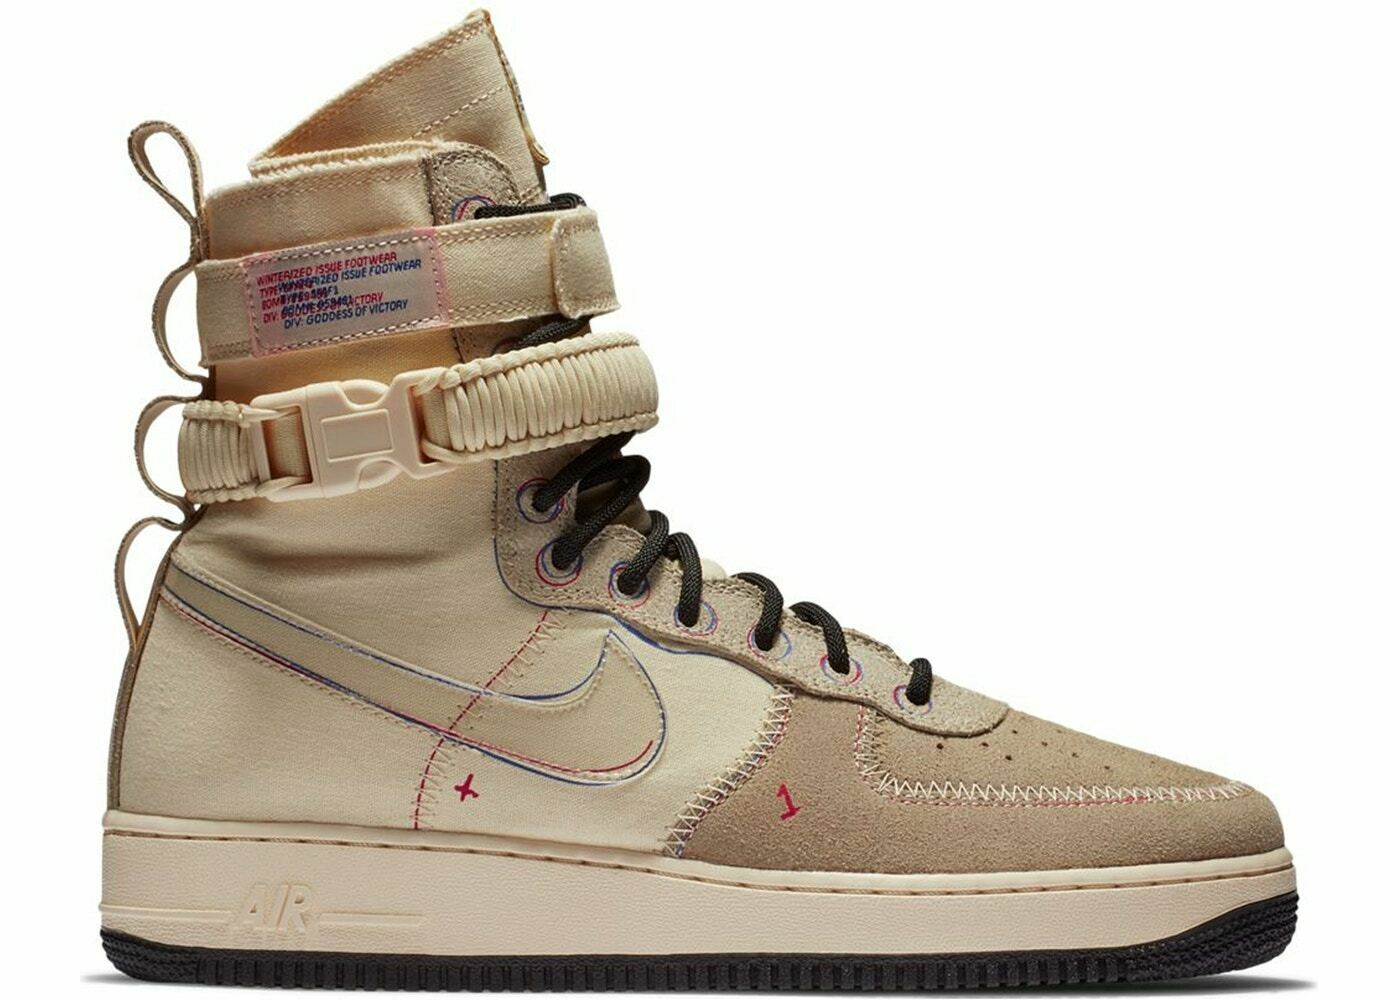 """NIKE SF SPECIAL FIELD AIR FORCE 1 HIGH """"MUSLIN"""" SIZE 10.5 NEW W/BOX (AT4647-100)"""